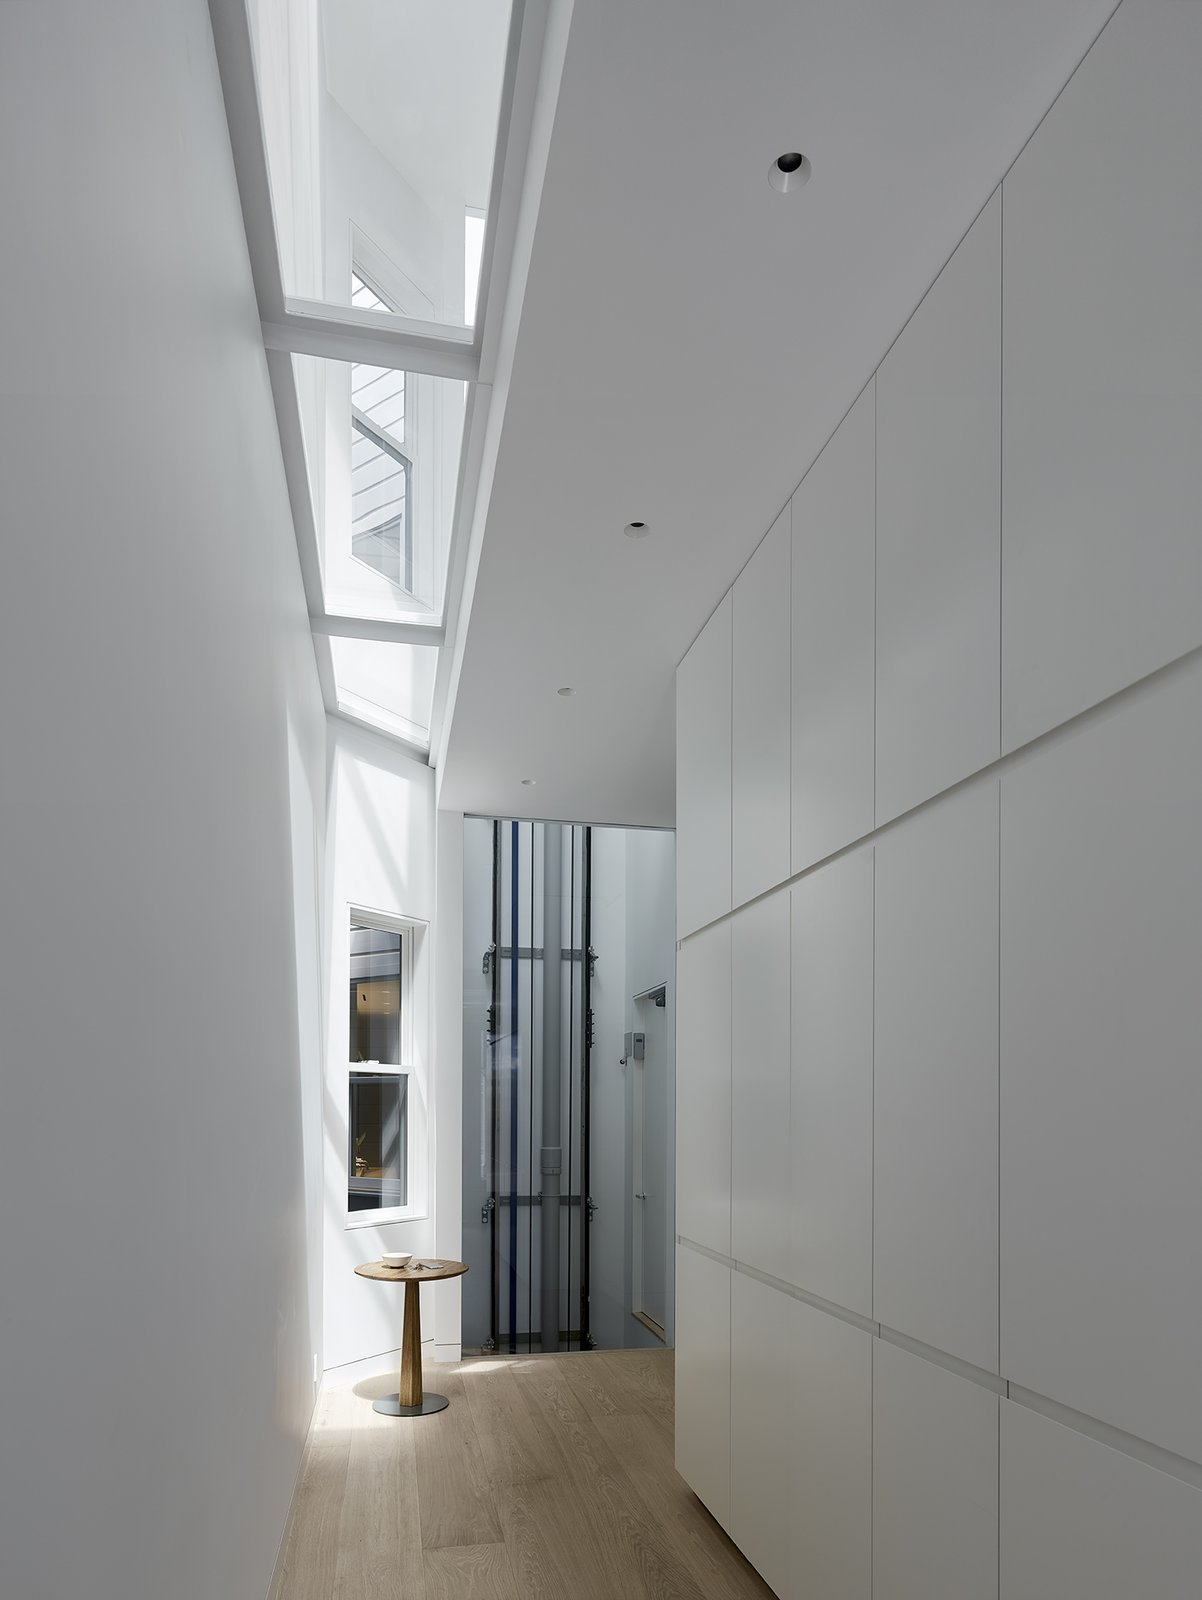 After: Alamo Square Residence indoor hallway with light hardwood flooring, white square panel details on the wall, and light from recessed lighting and skylights.